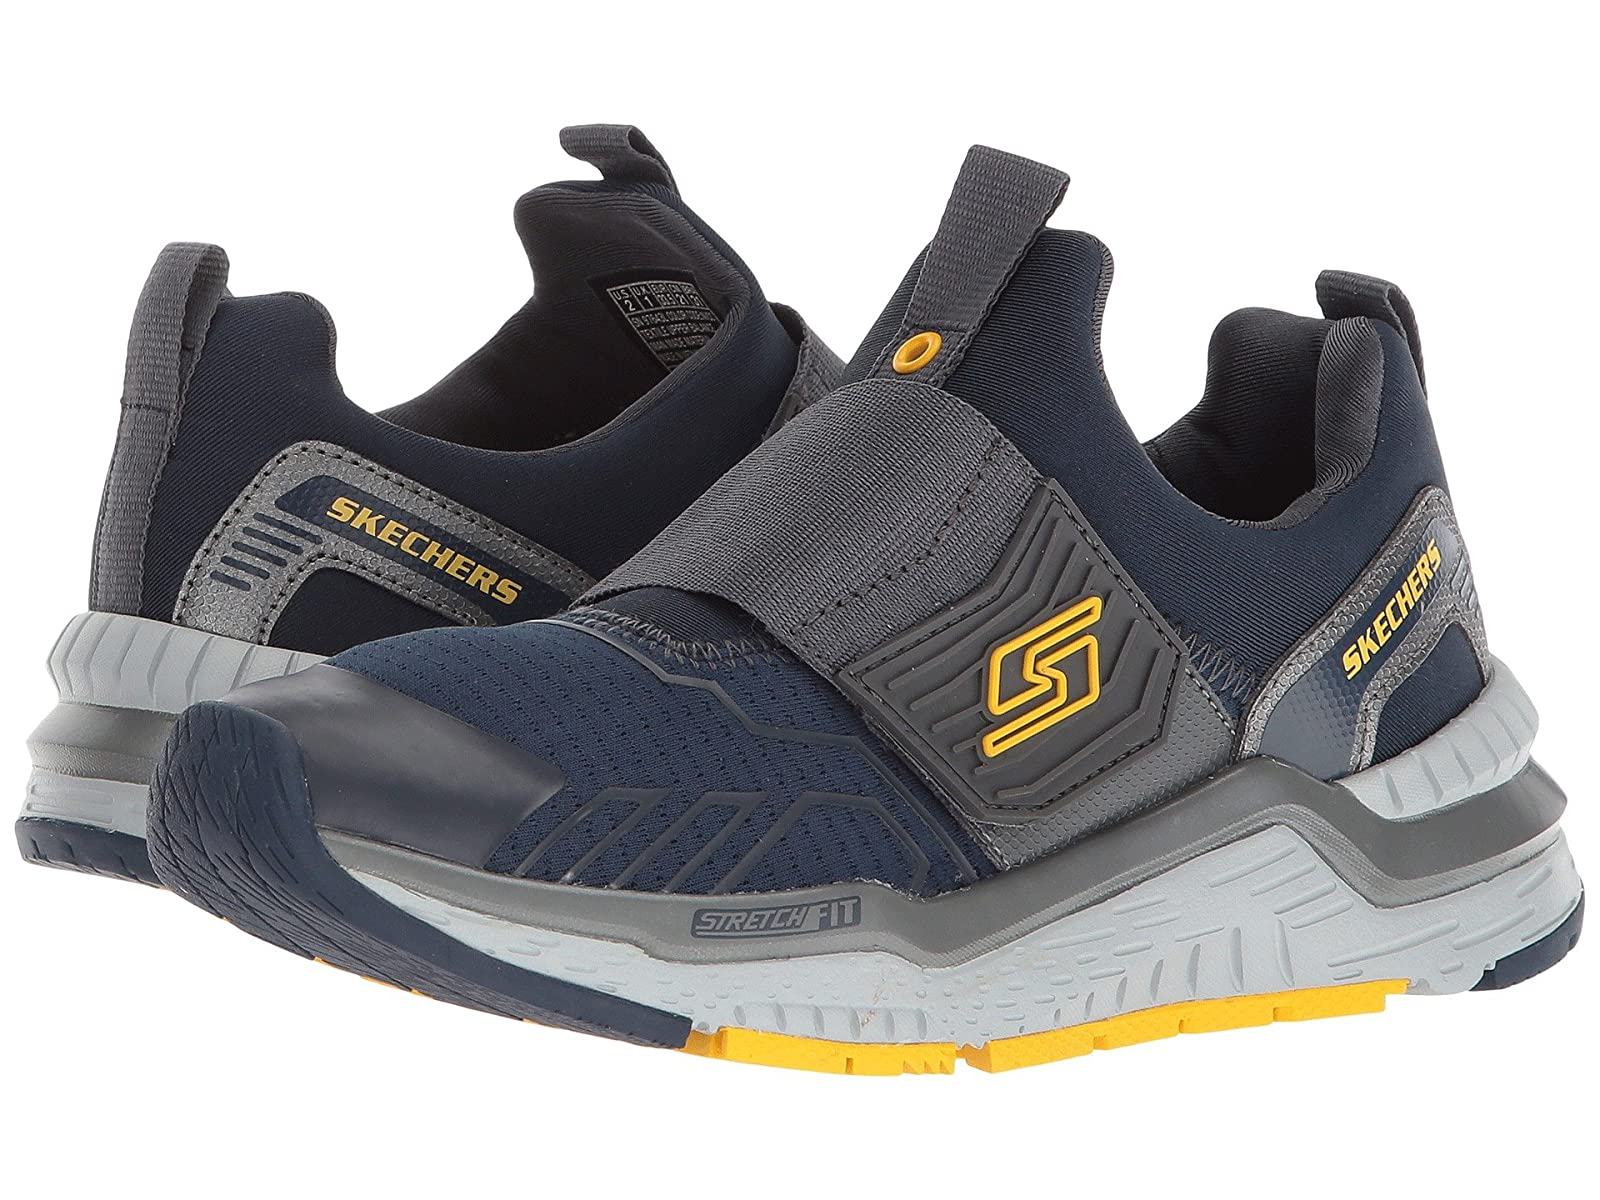 SKECHERS KIDS Hyperjolt - Thermospeed 97643L Lights (Little Kid/Big Kid)Cheap and distinctive eye-catching shoes